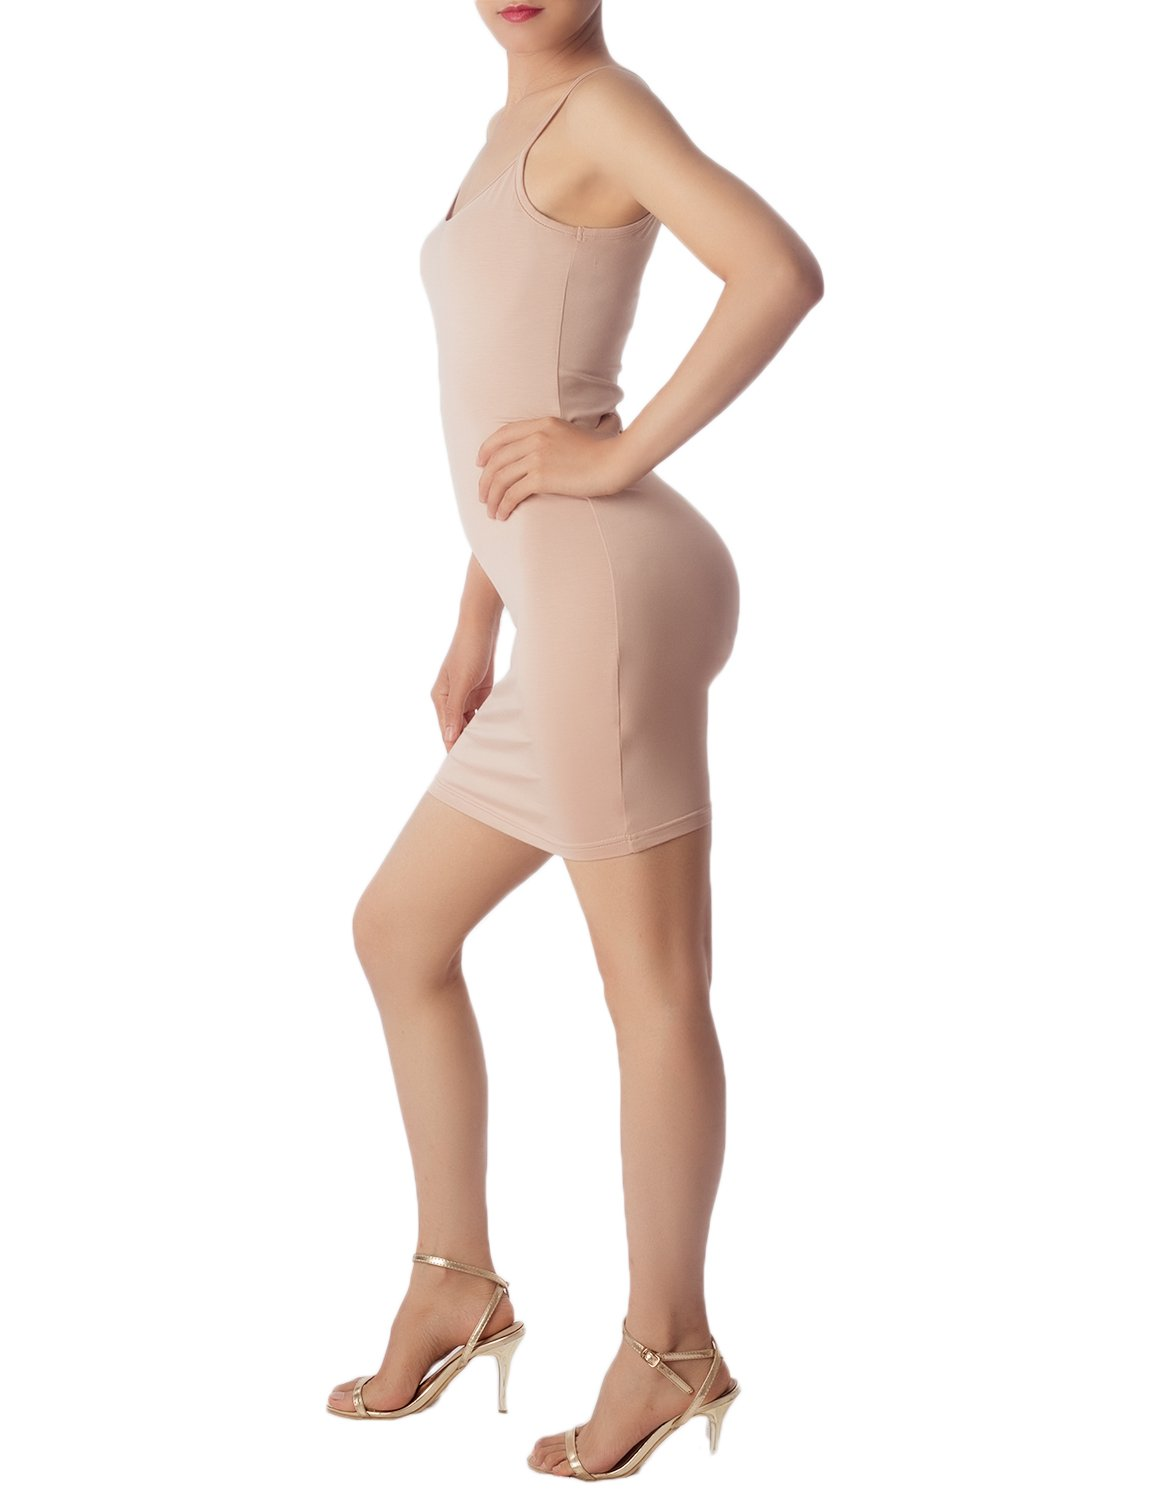 Women's Cotton Under Dress Short Slip Slim Control Mid-Thigh Bodycon Dress, Size: 2XL, Beige